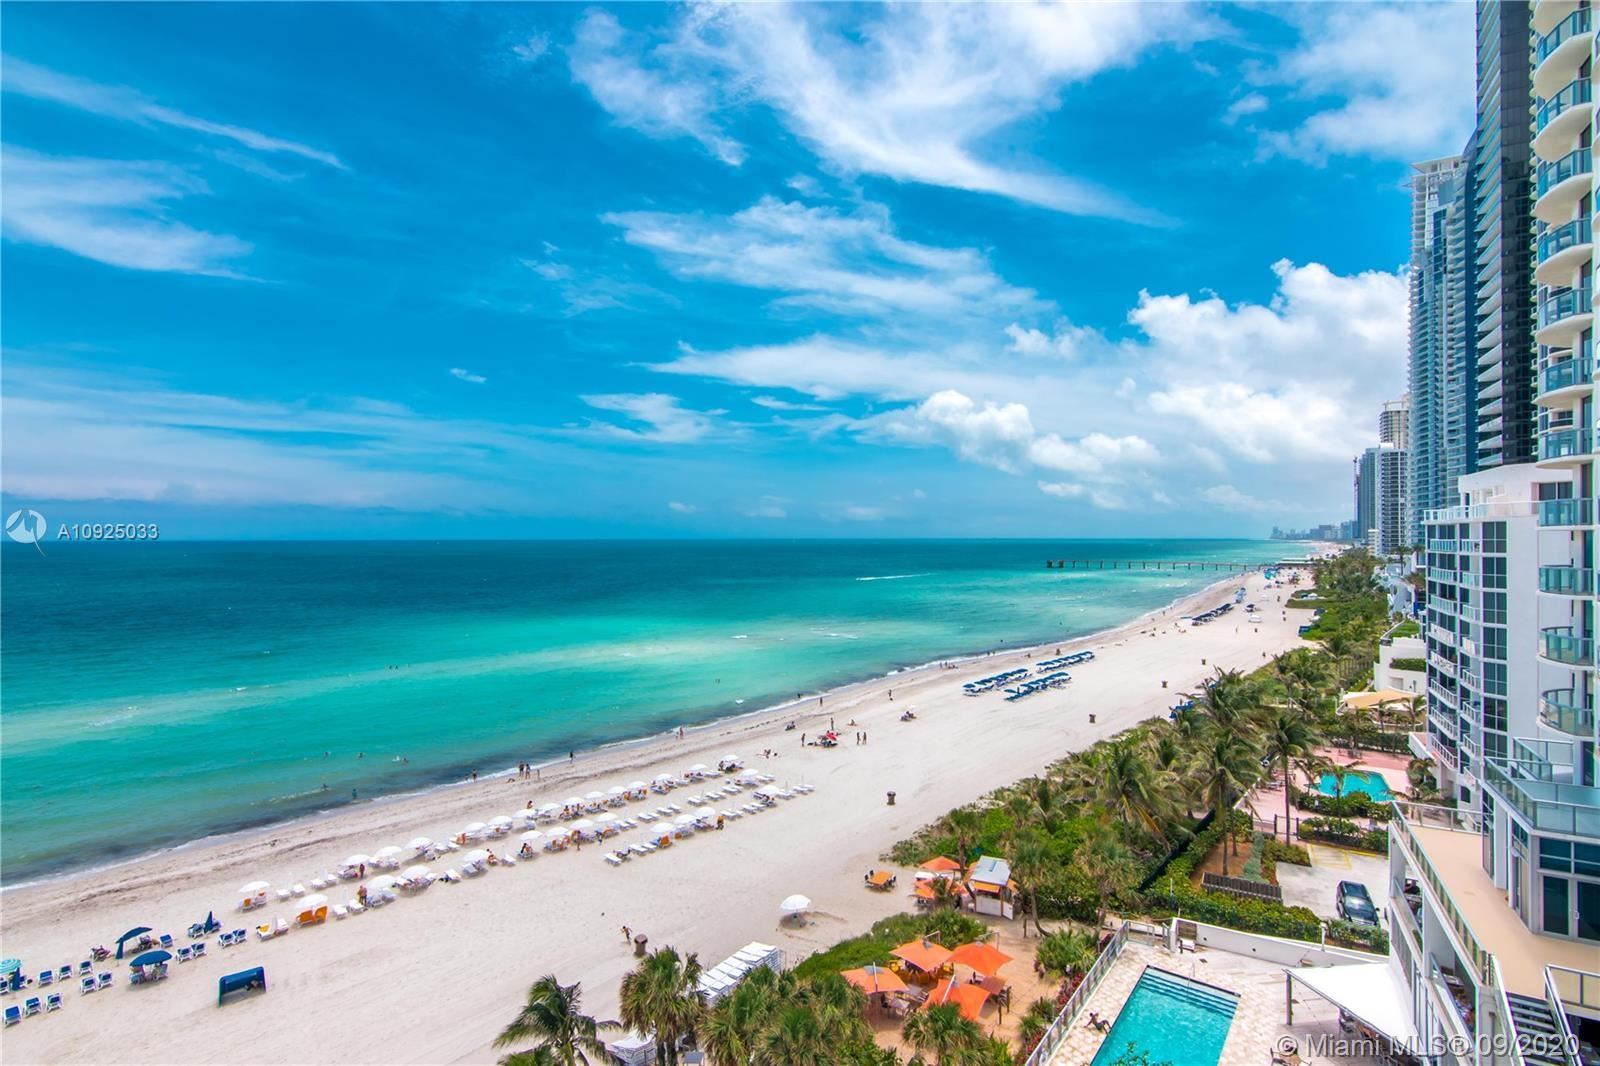 17375 Collins Ave #1001, Sunny Isles, FL 33160 - #: A10925033